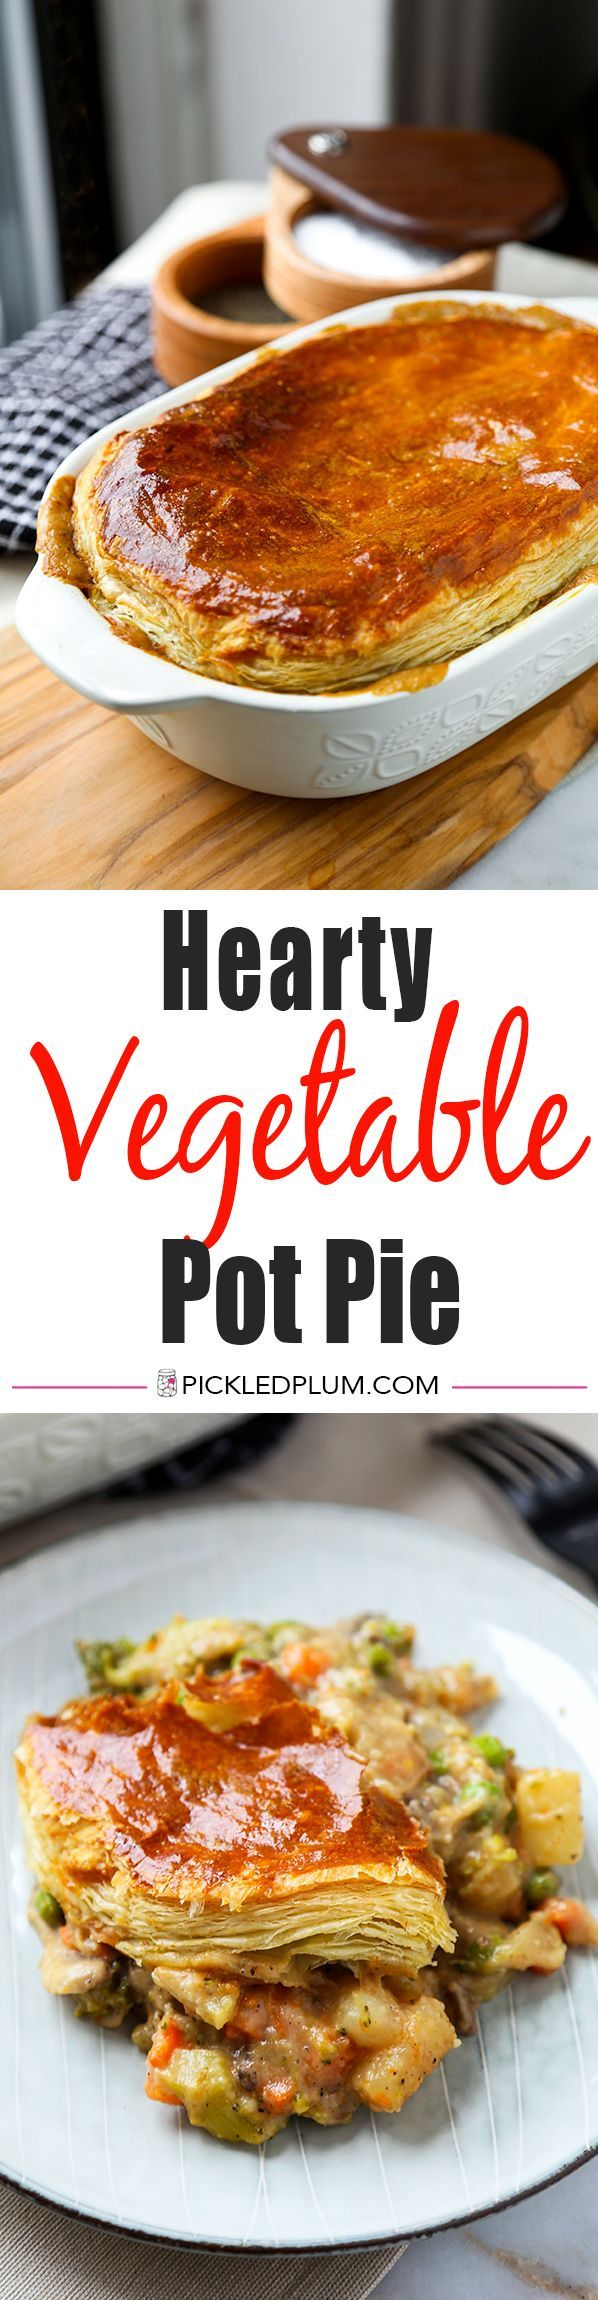 Hearty Vegetable Pot Pie - This hearty vegetable pot pie with creamy mushroom sauce and topped with puff pastry is guaranteed to keep you warm this winter! Recipe, pie, baking, vegetables, dinner, main | pickledplum.com